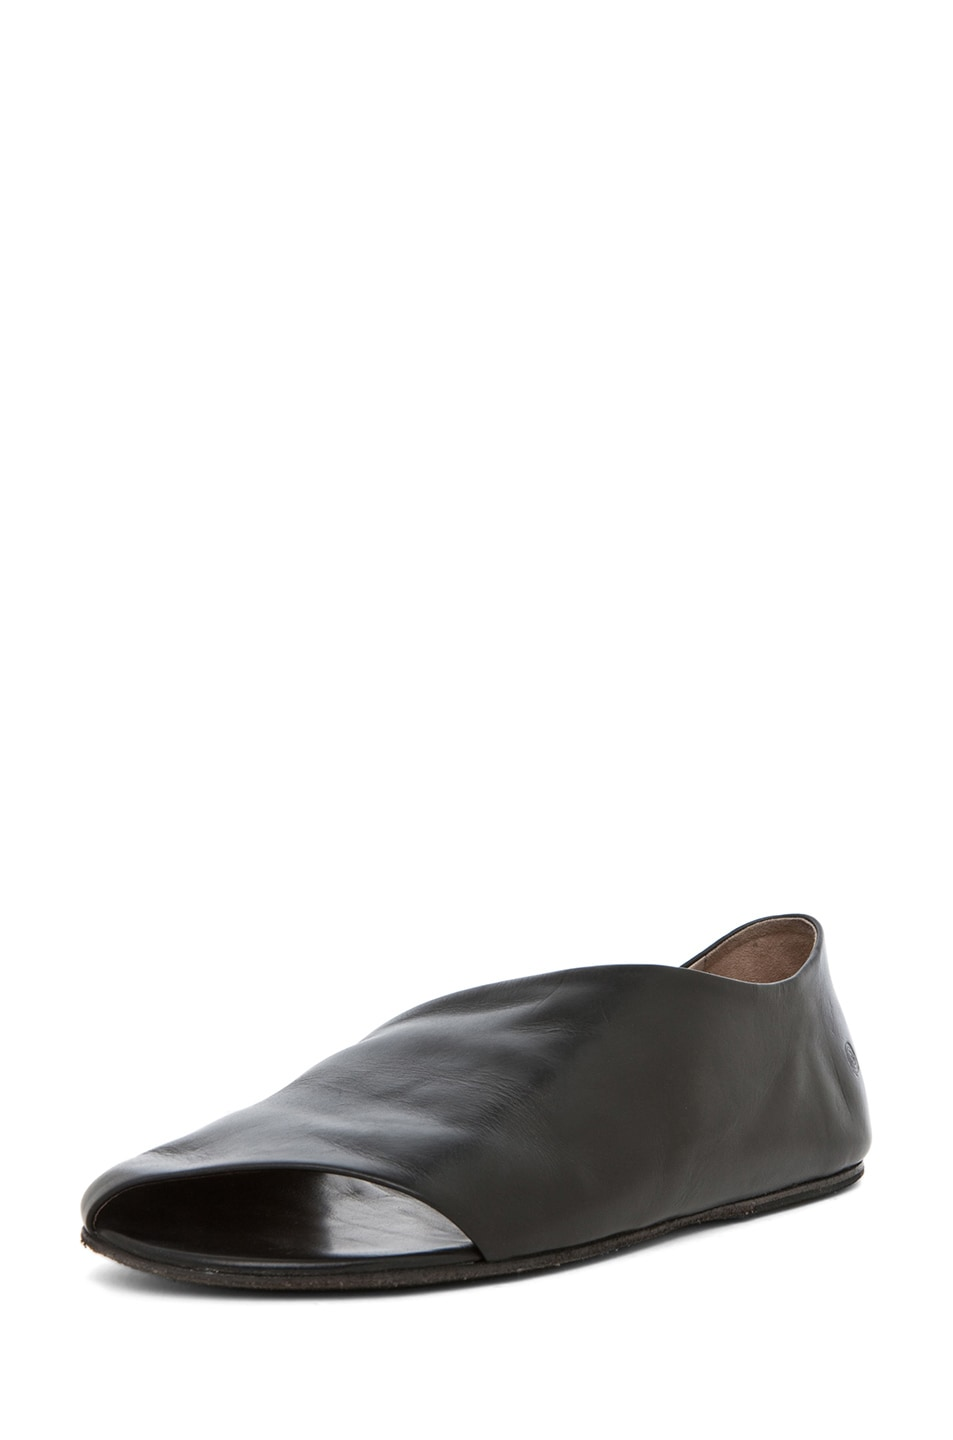 Image 2 of Marsell Arsella Flat in Black